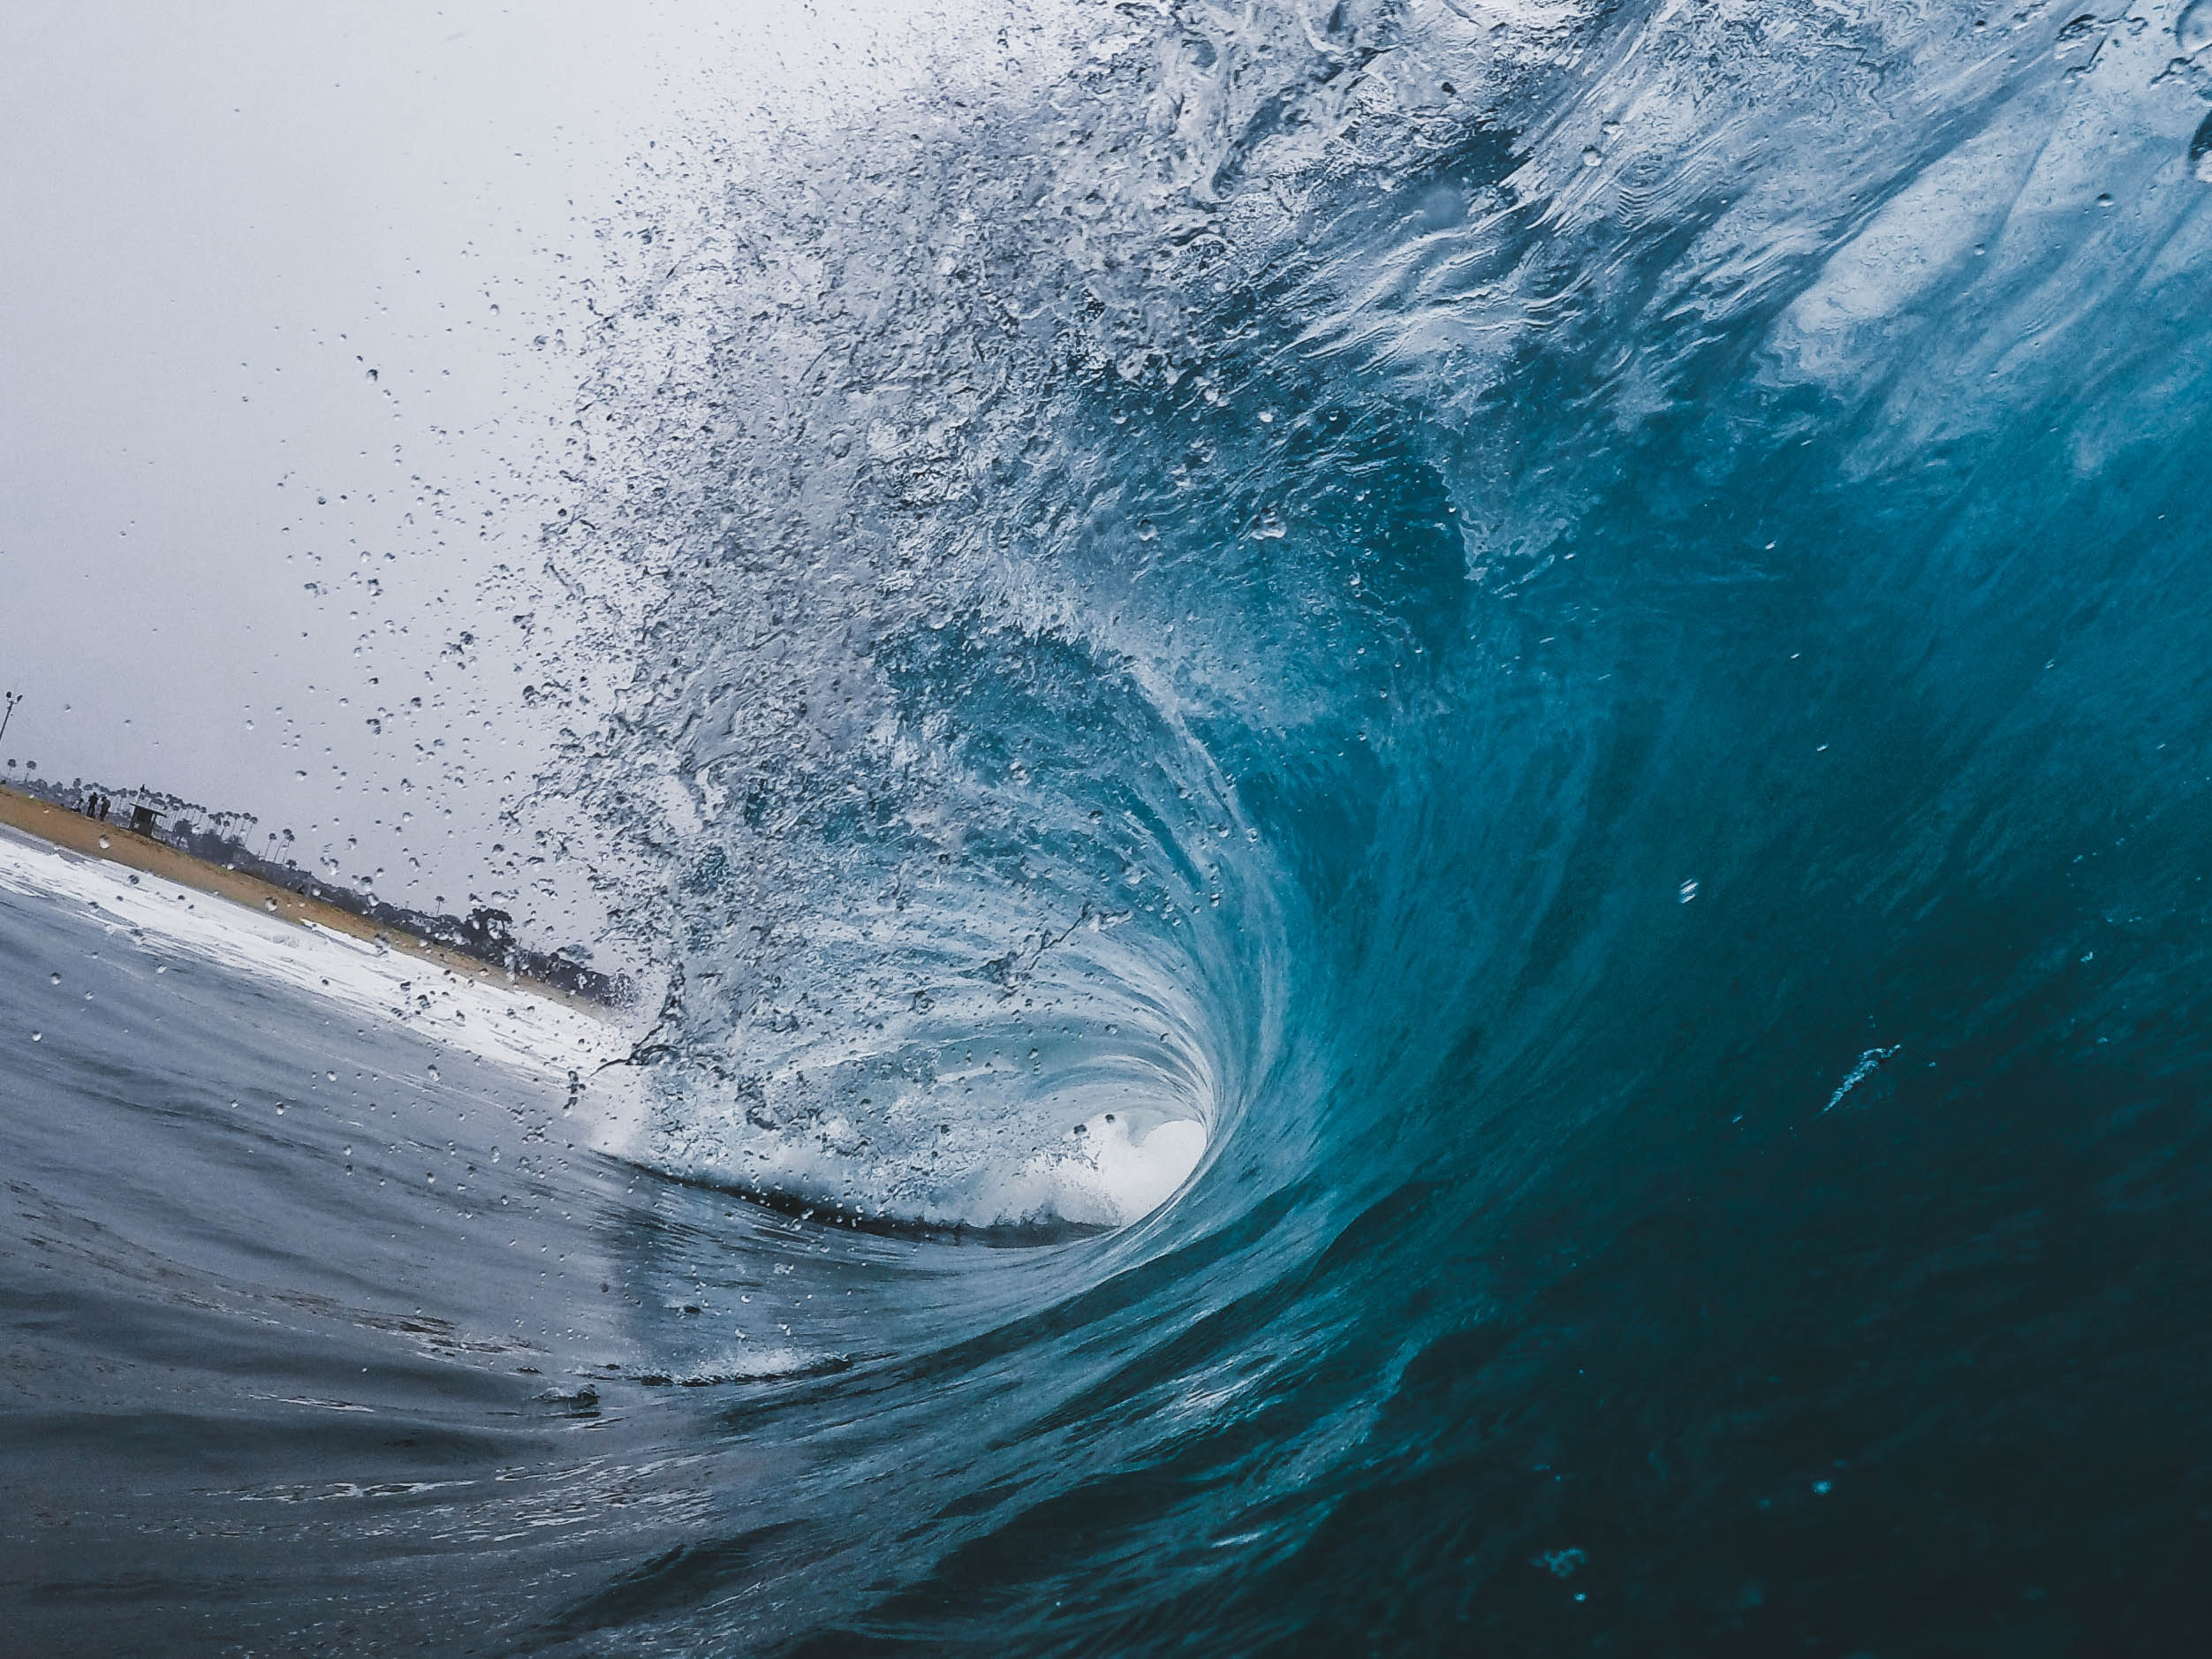 Surfing the Emotional Waves of Covid-19